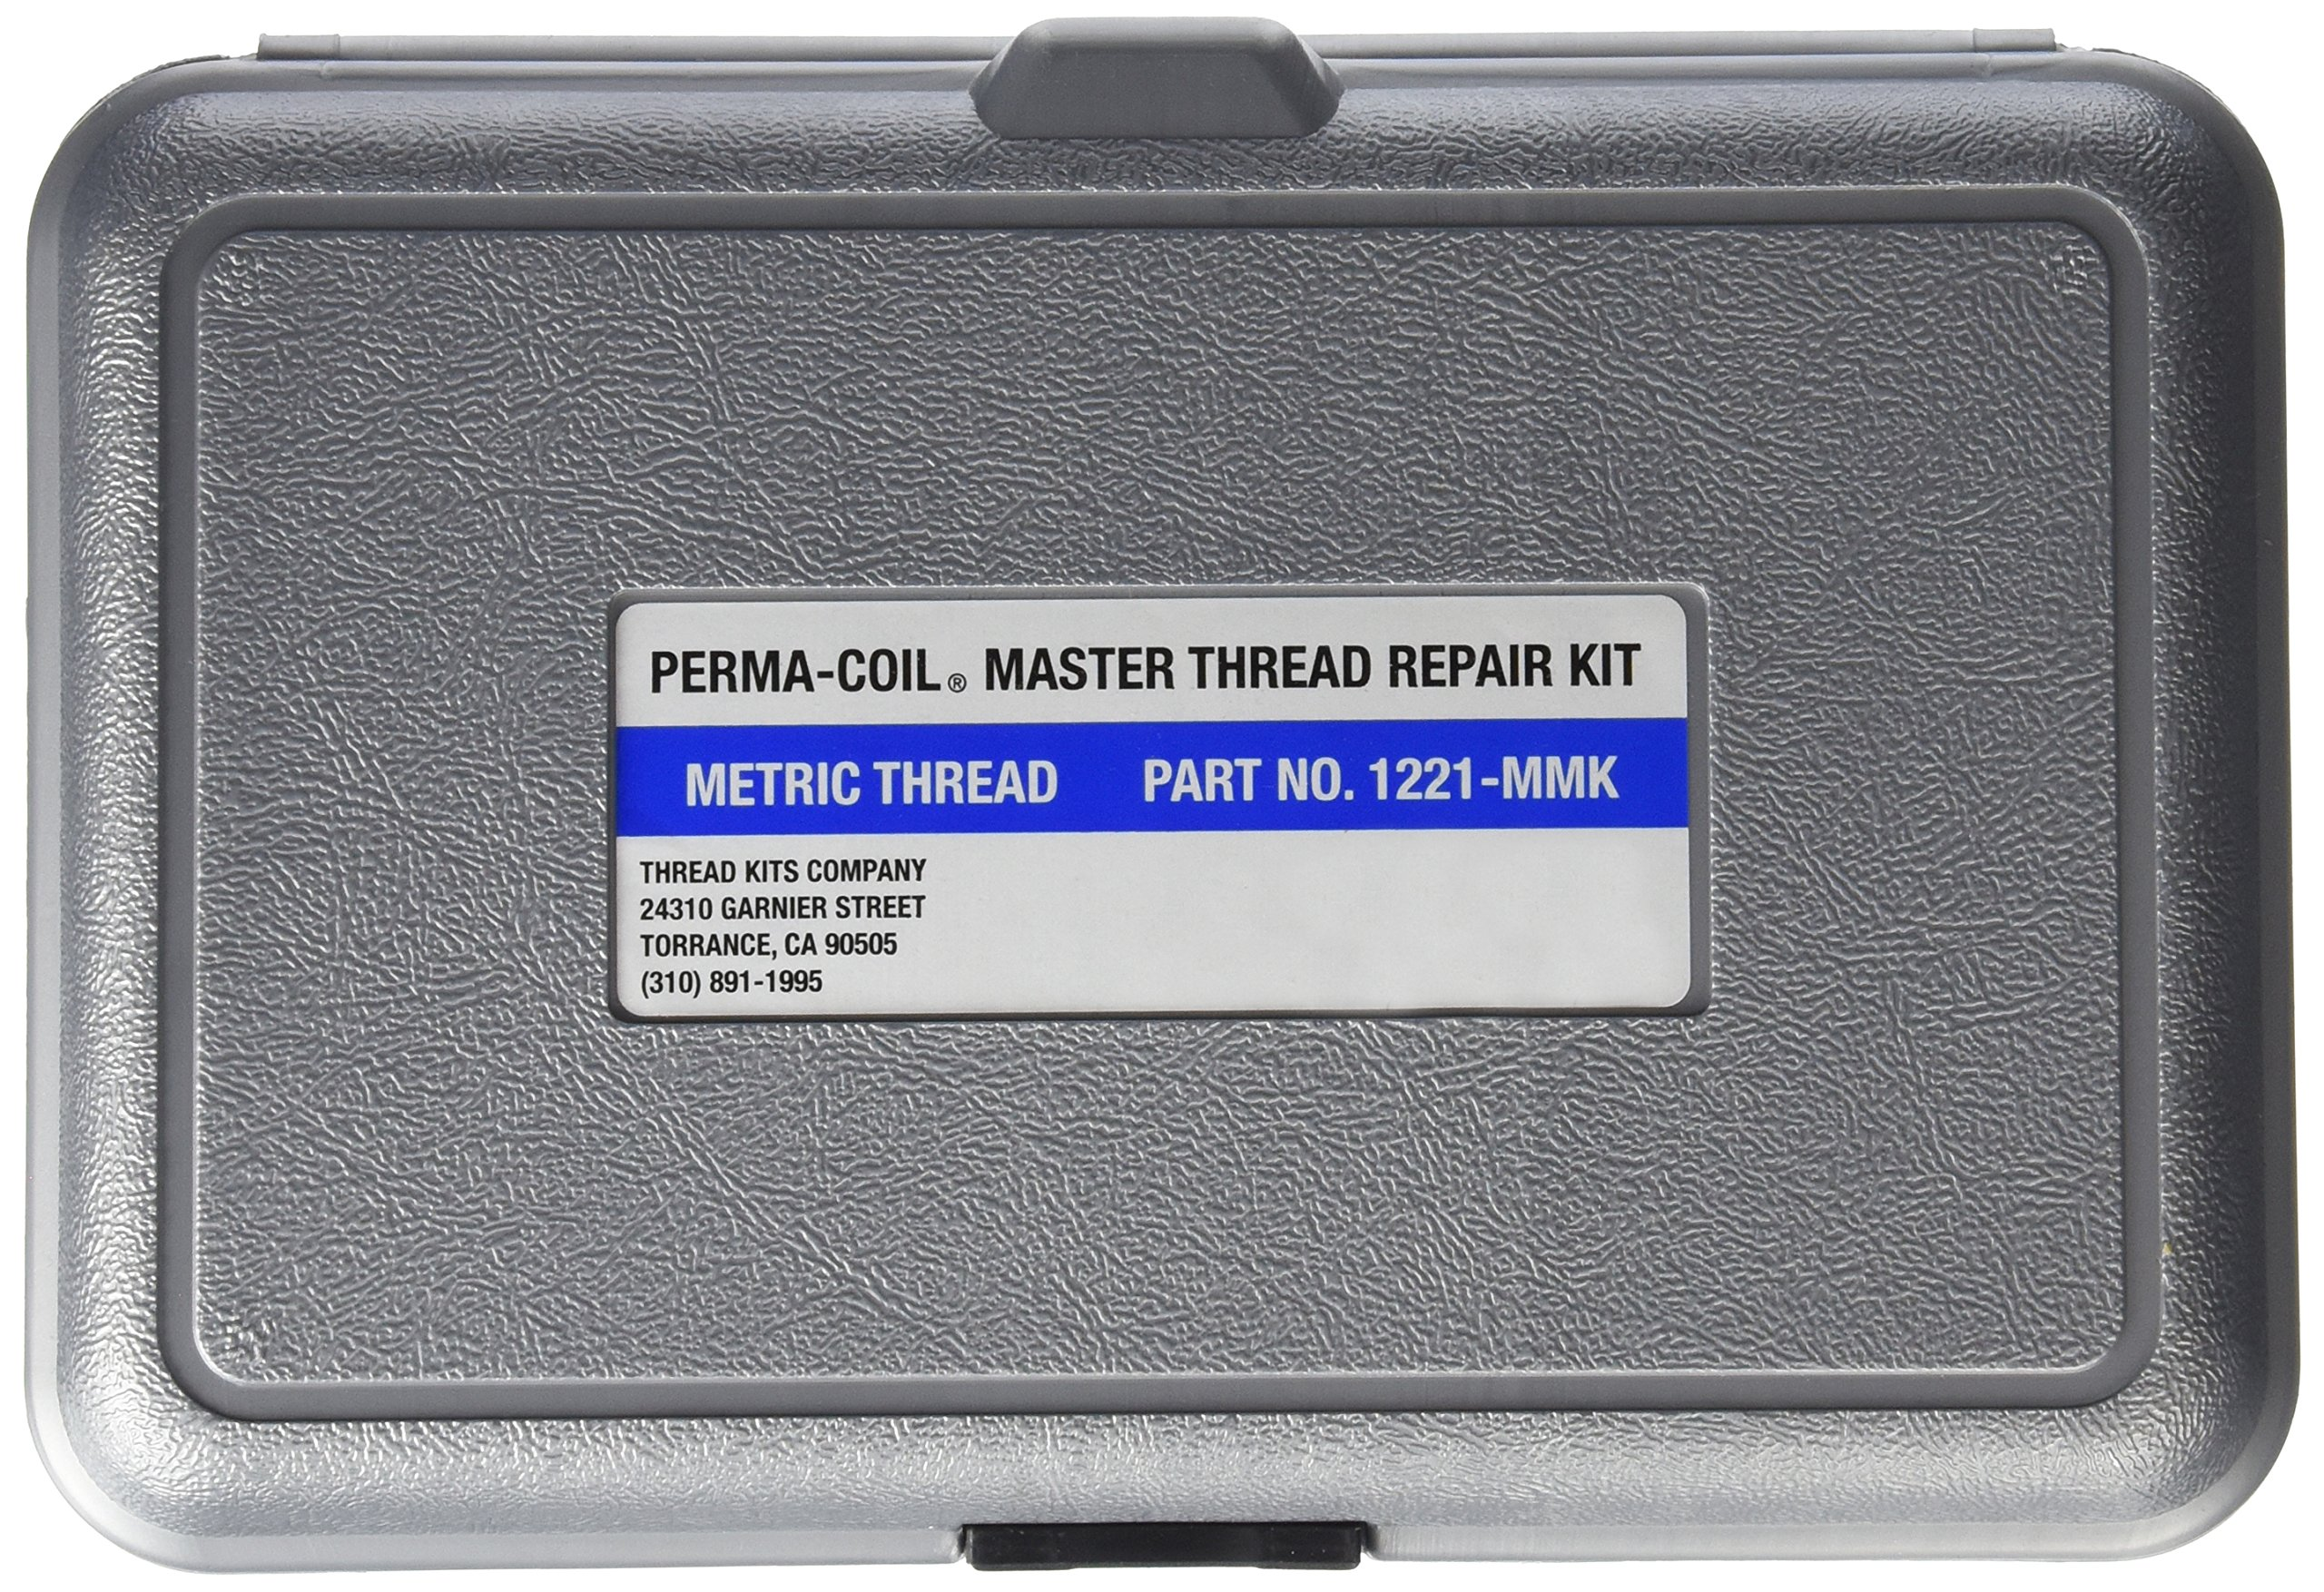 Thread Kits (1221-MMK) Metric Thread Repair Kit